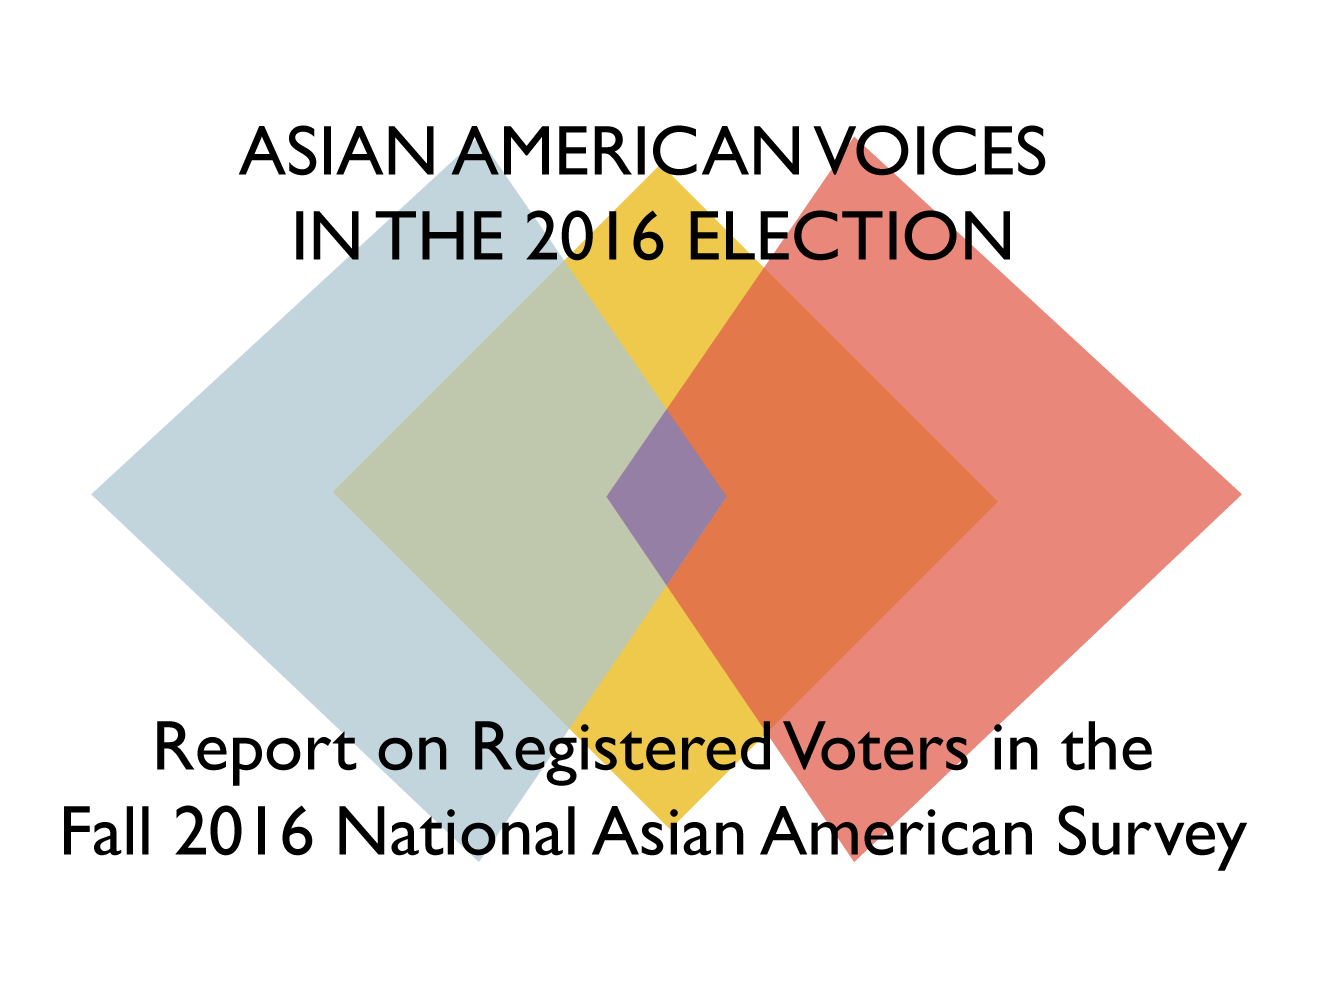 Asian American Voices in the 2016 Election